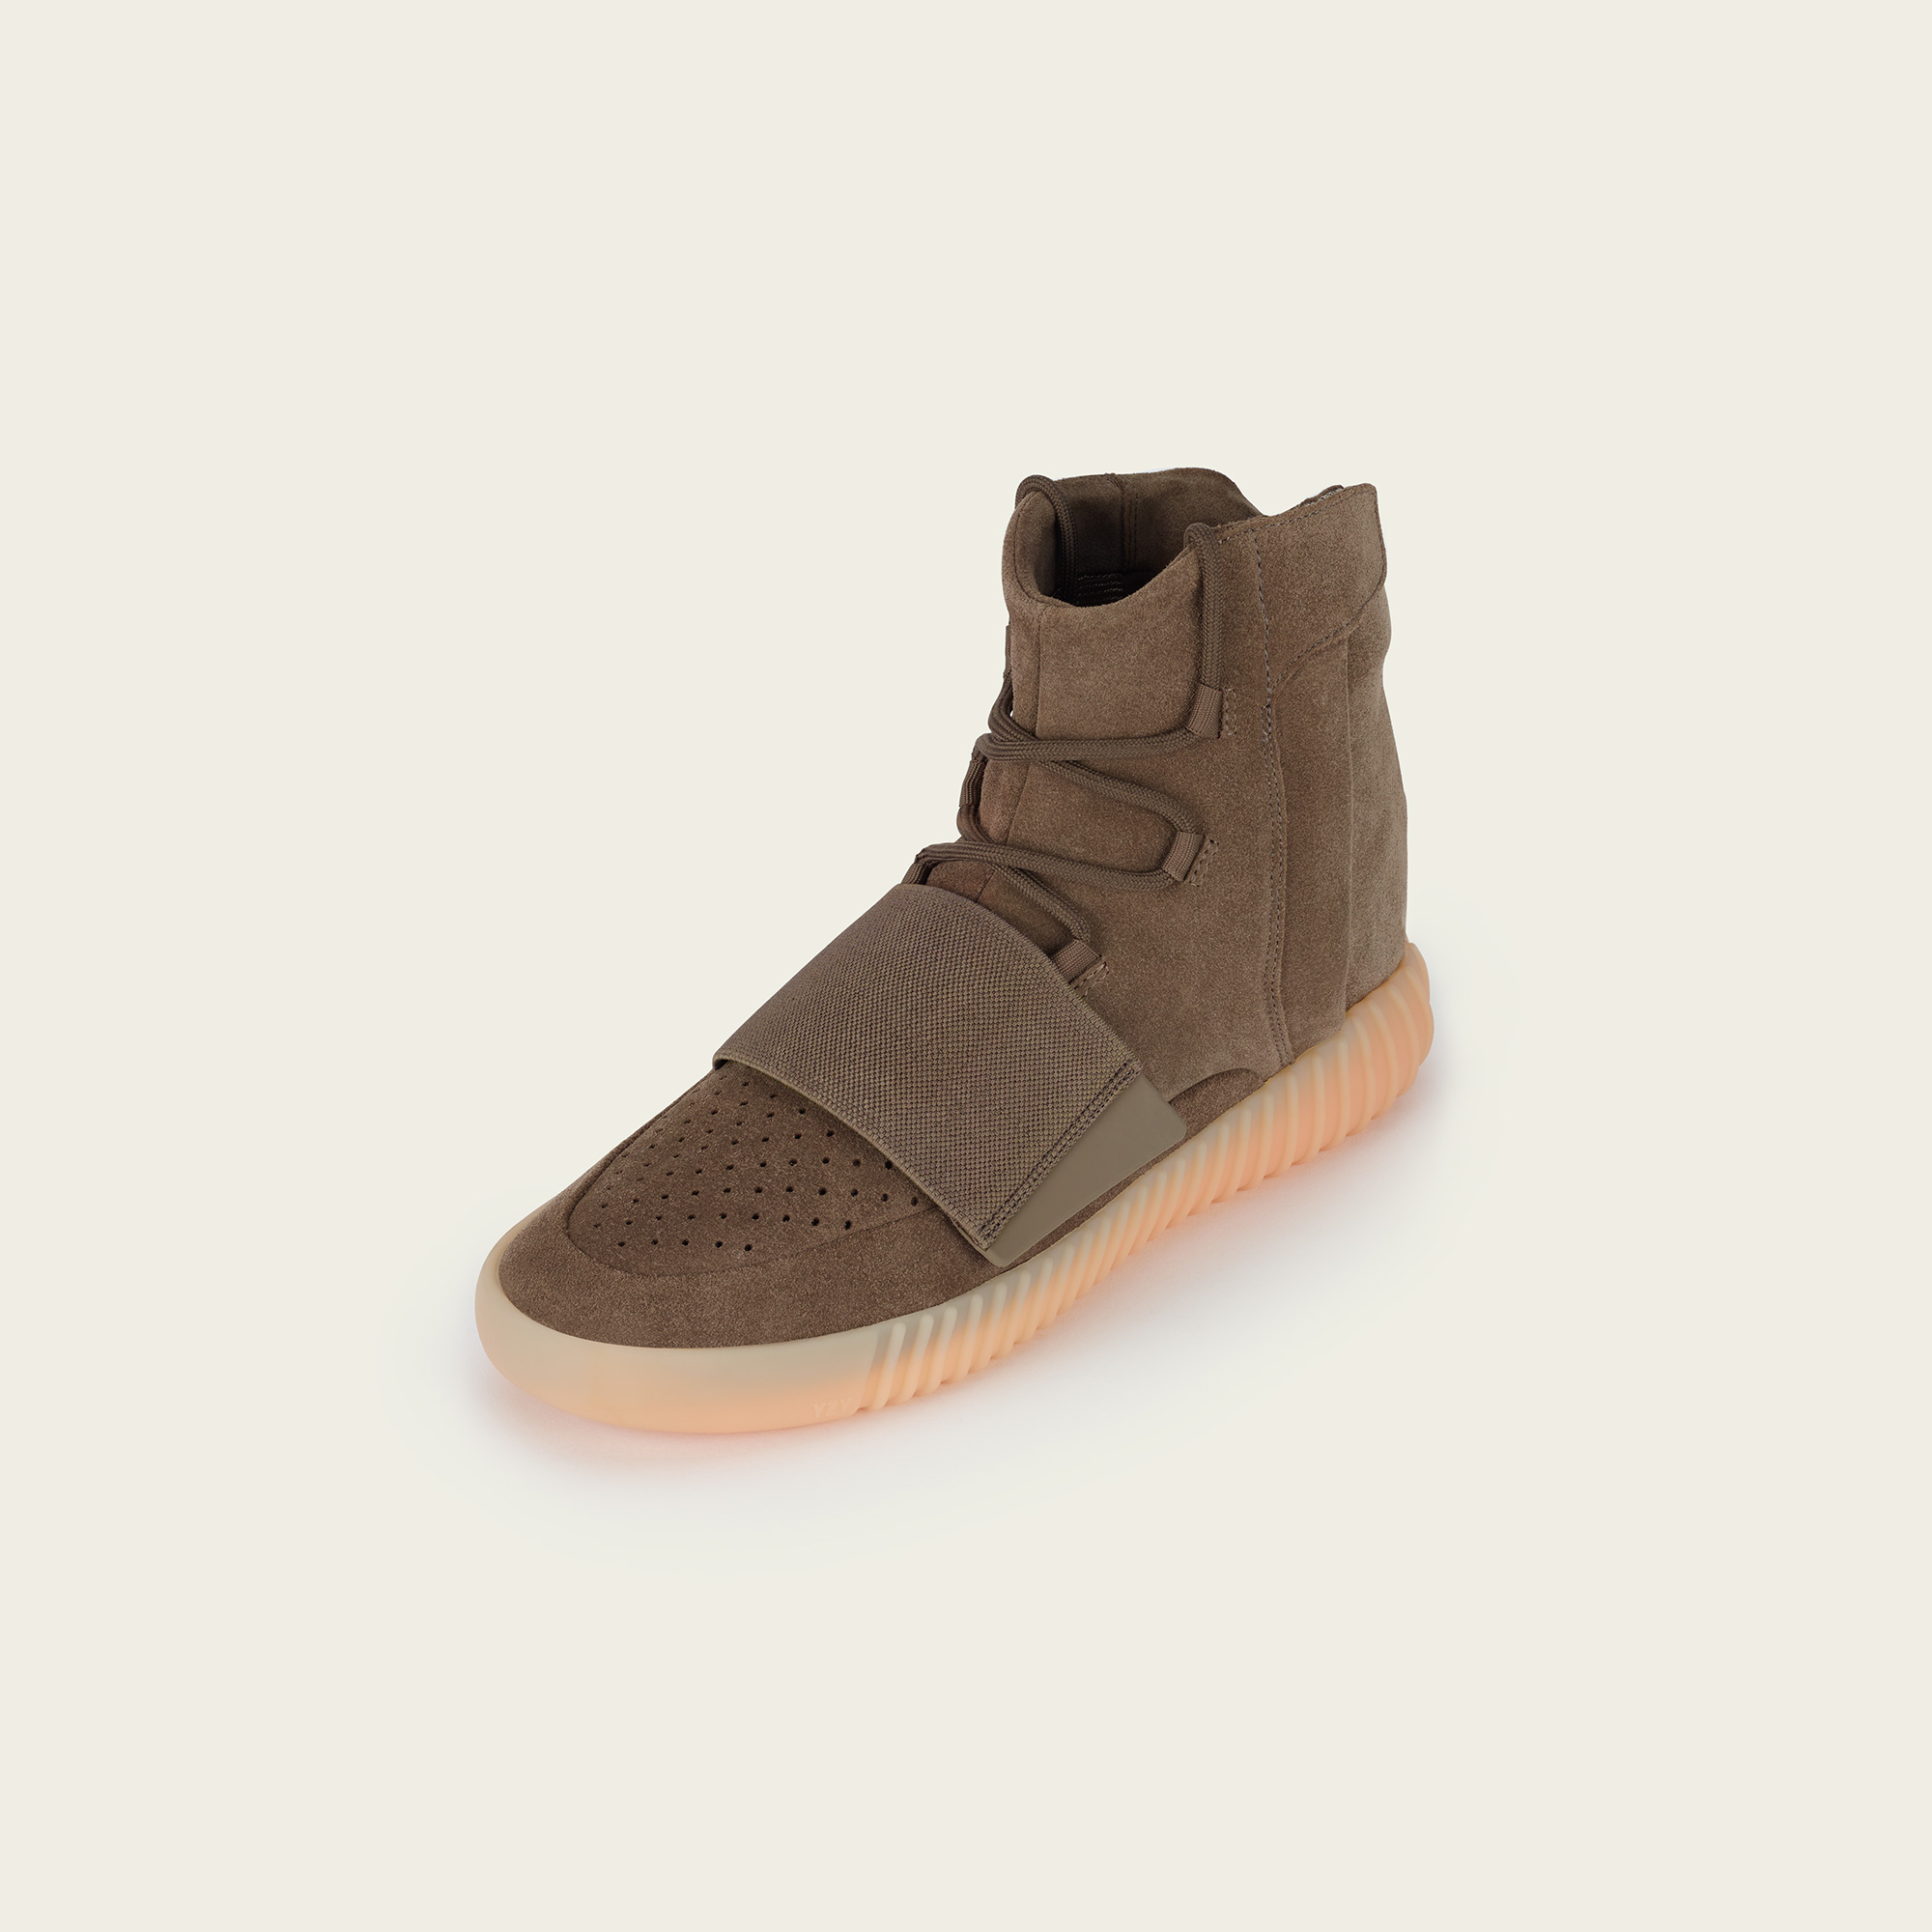 adidas-yeezy-boost-750-brown-1